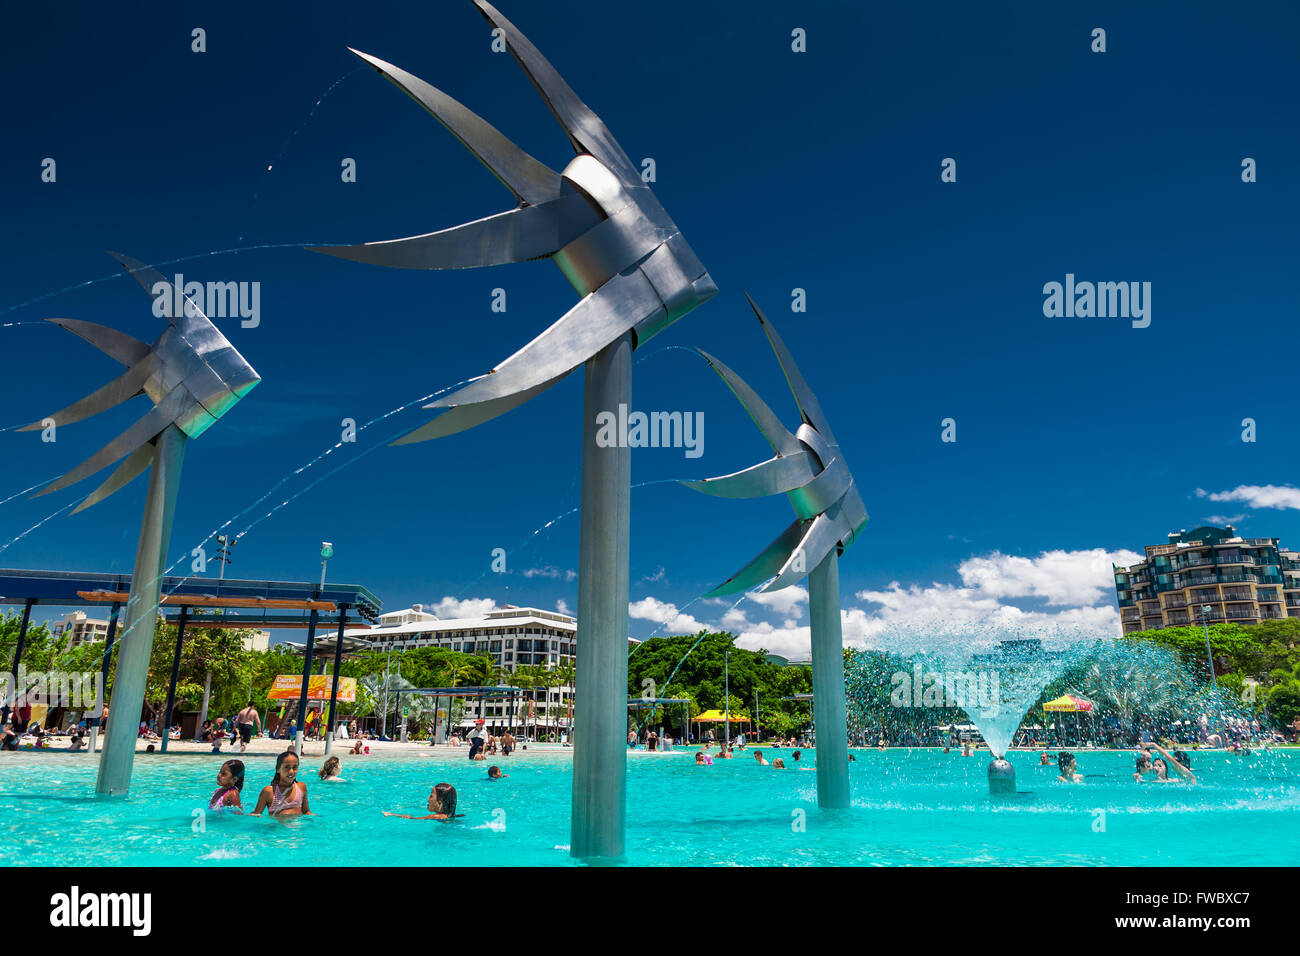 CAIRNS, AUSTRALIA - 18 OCT 2009 - People enjoy a hot day, lagoon at Cairns Esplanade. The Cairns Esplanade has a - Stock Image